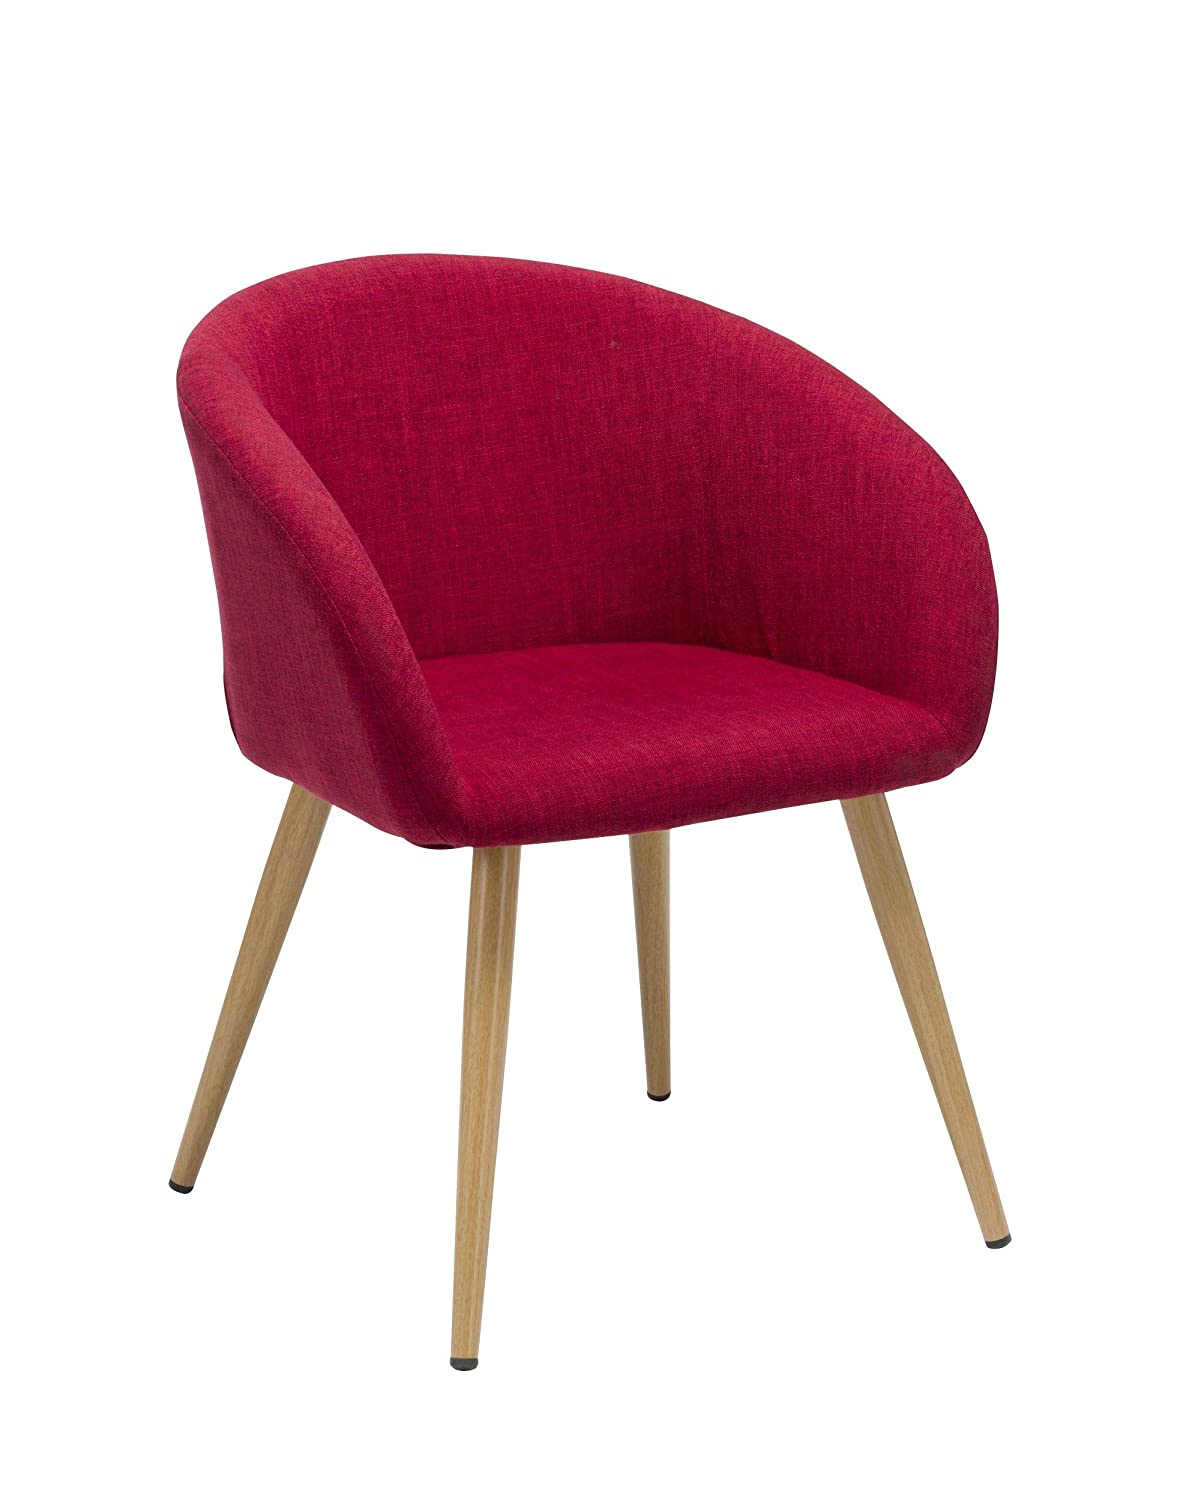 Duhome Elegant Lifestyle Dining Chair Fabric (Linen) Red Chair Retro Design Metal Legs Wood Look Colour Selection WY-8023 Duhome Elegant Lifestyle®